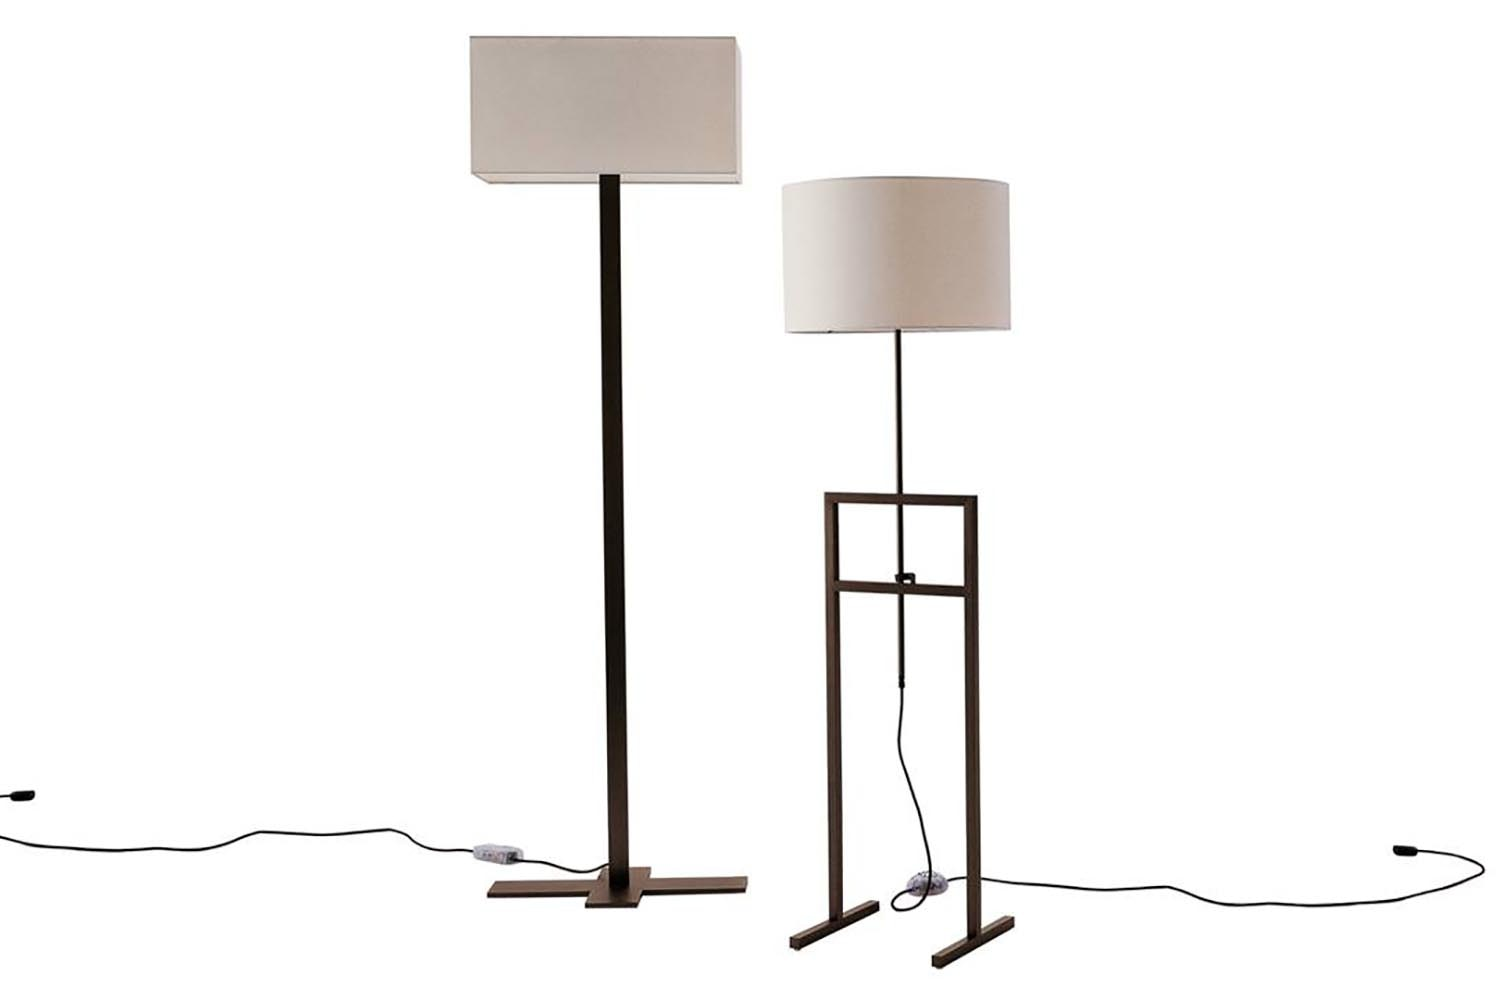 Leukon Floor Lamp by Antonio Citterio for Maxalto